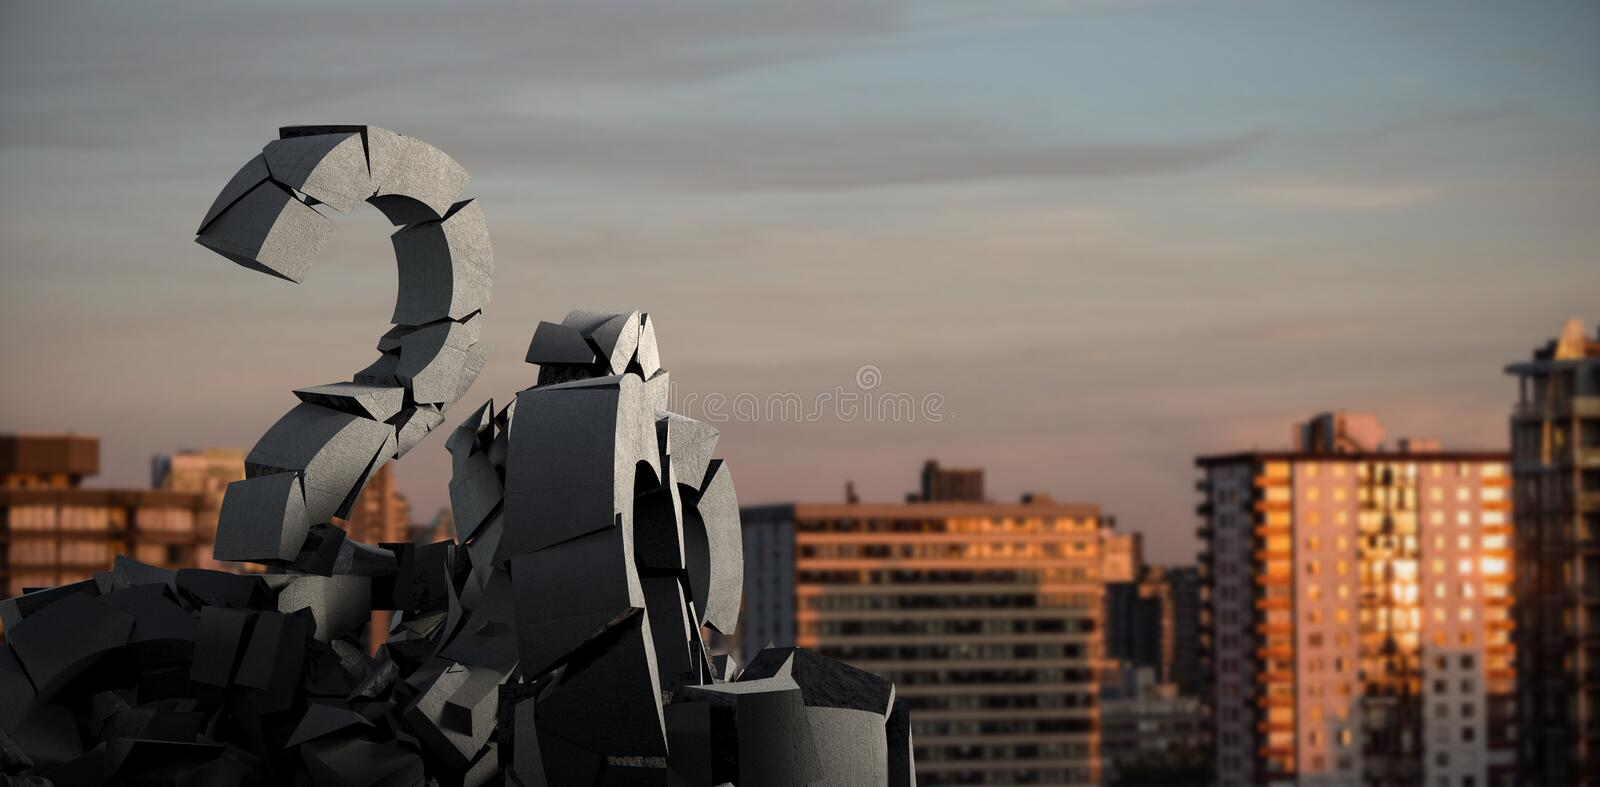 Composite image of 3d image of damaged question mark with rocks. 3d image of damaged question mark with rocks against sunlight falling on buildings during sunset stock photos